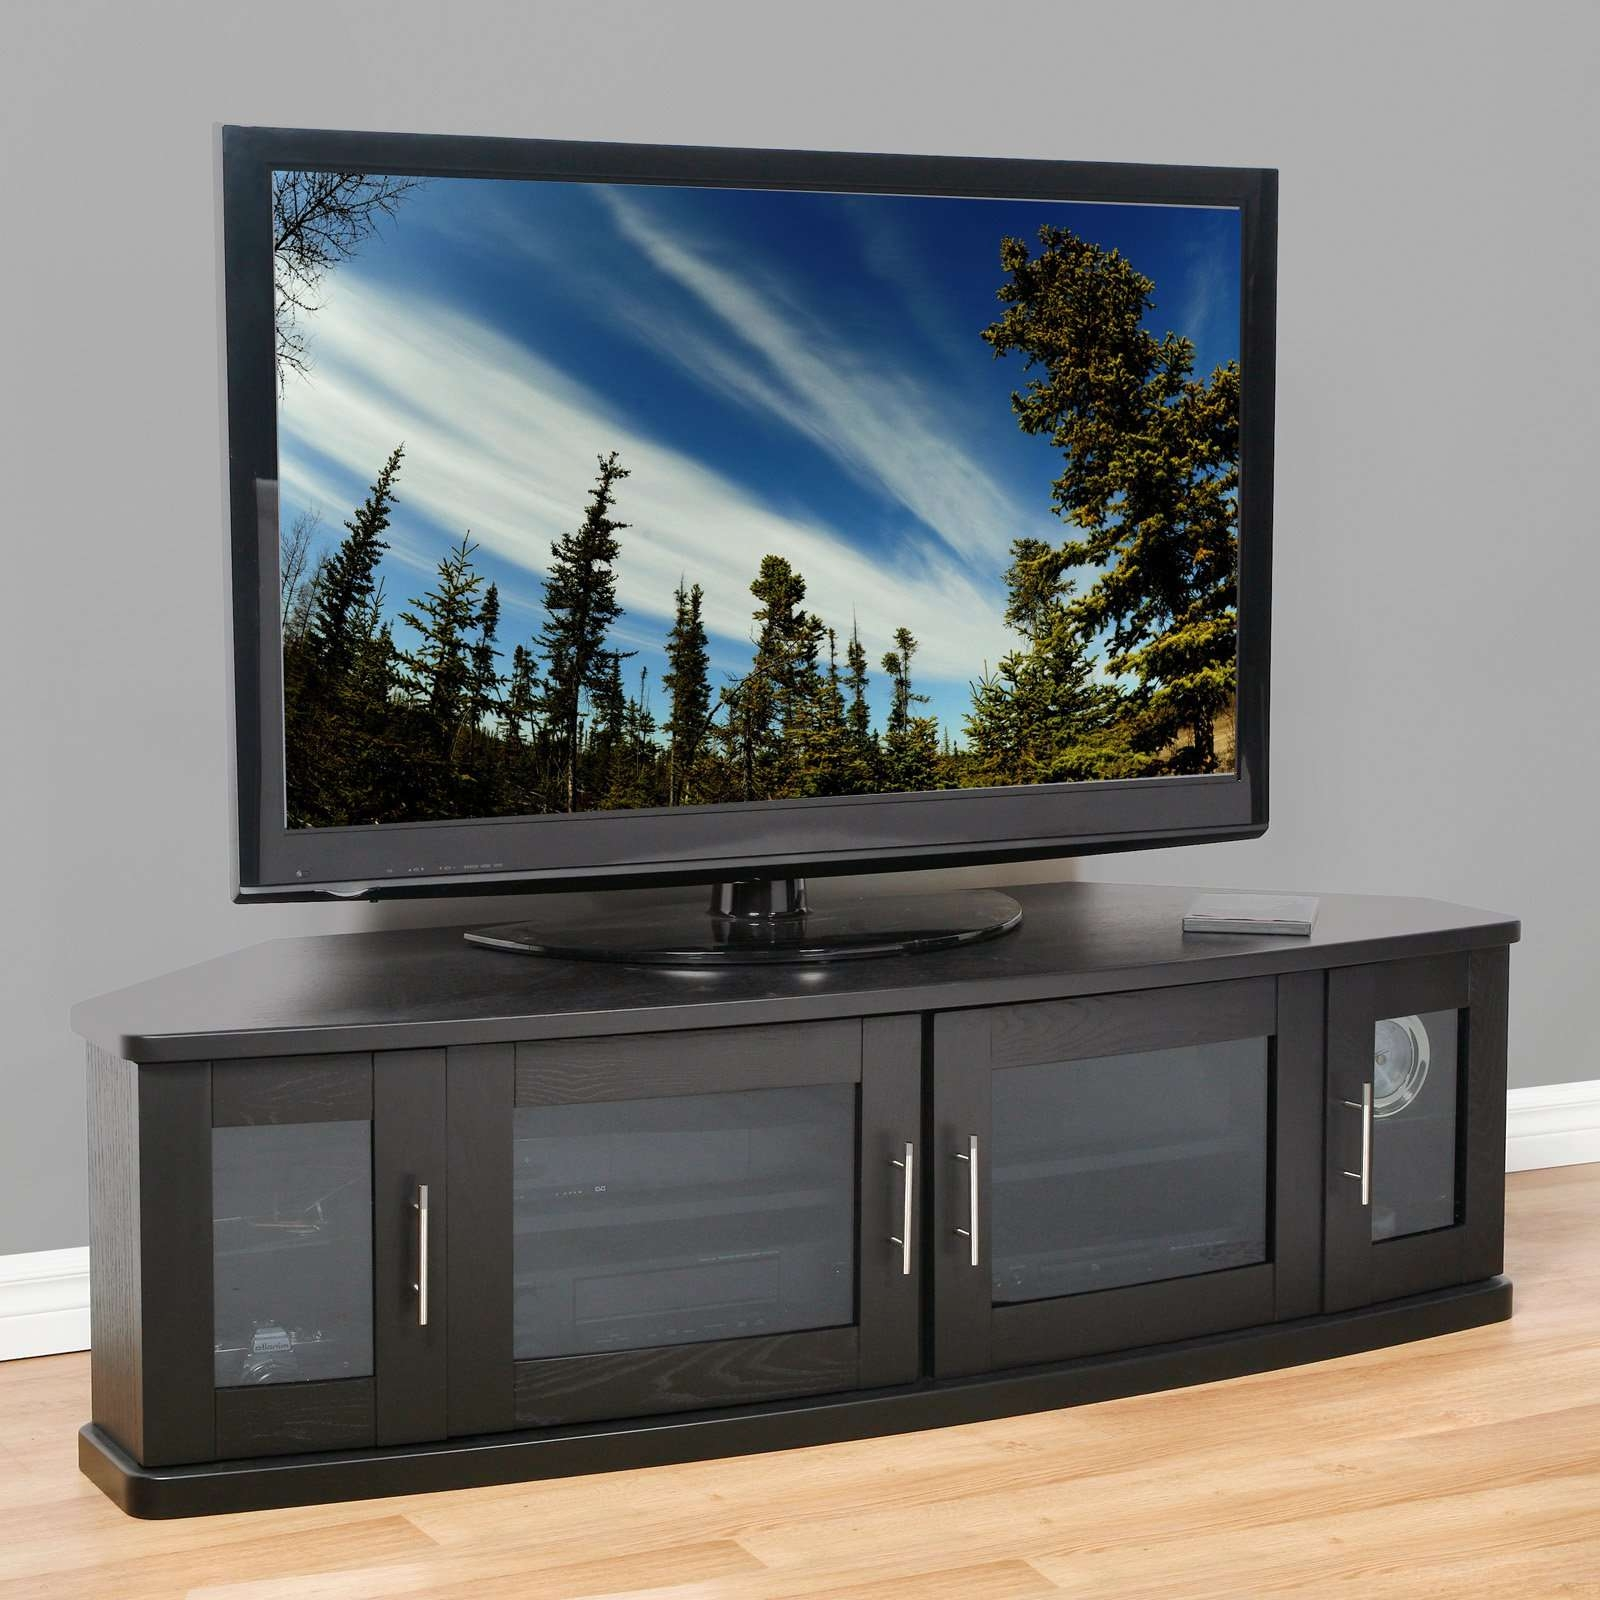 Large Corner Tv Cabinet With 4 Glass Doors And Silver Handle With Regard To Corner Tv Cabinets With Glass Doors (View 7 of 20)